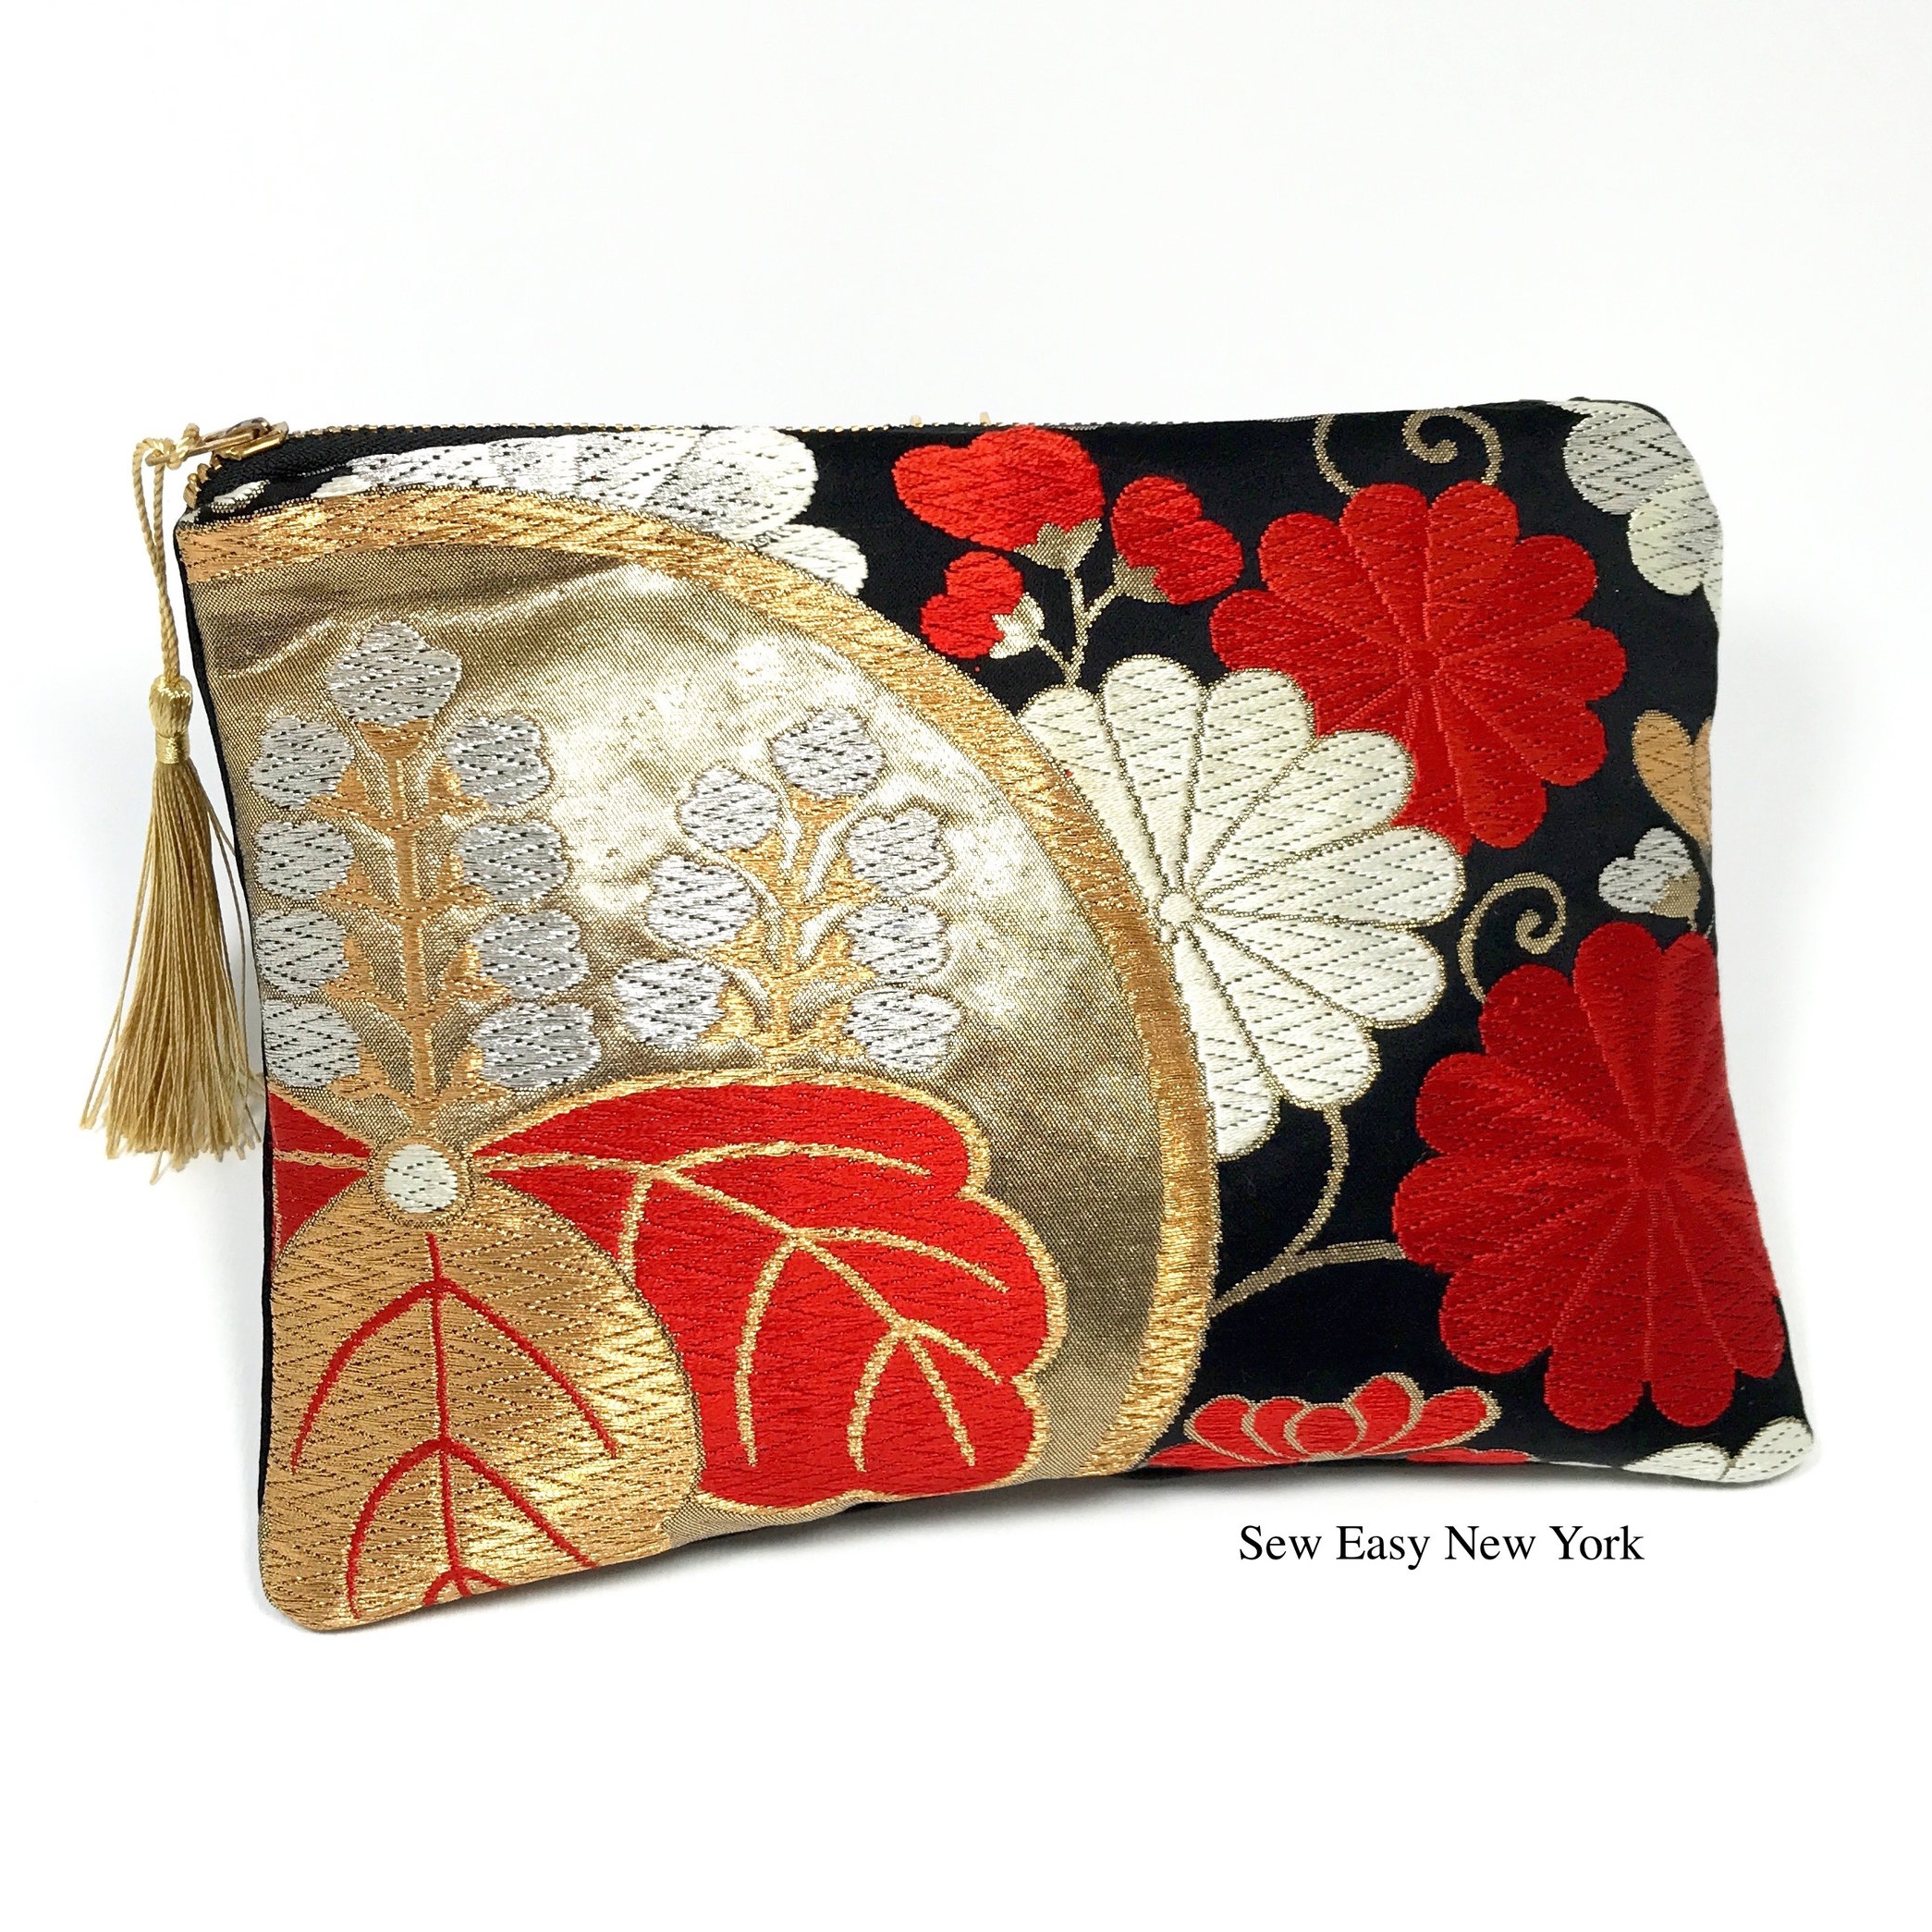 Sew Easy New York   Simple things for complex people.